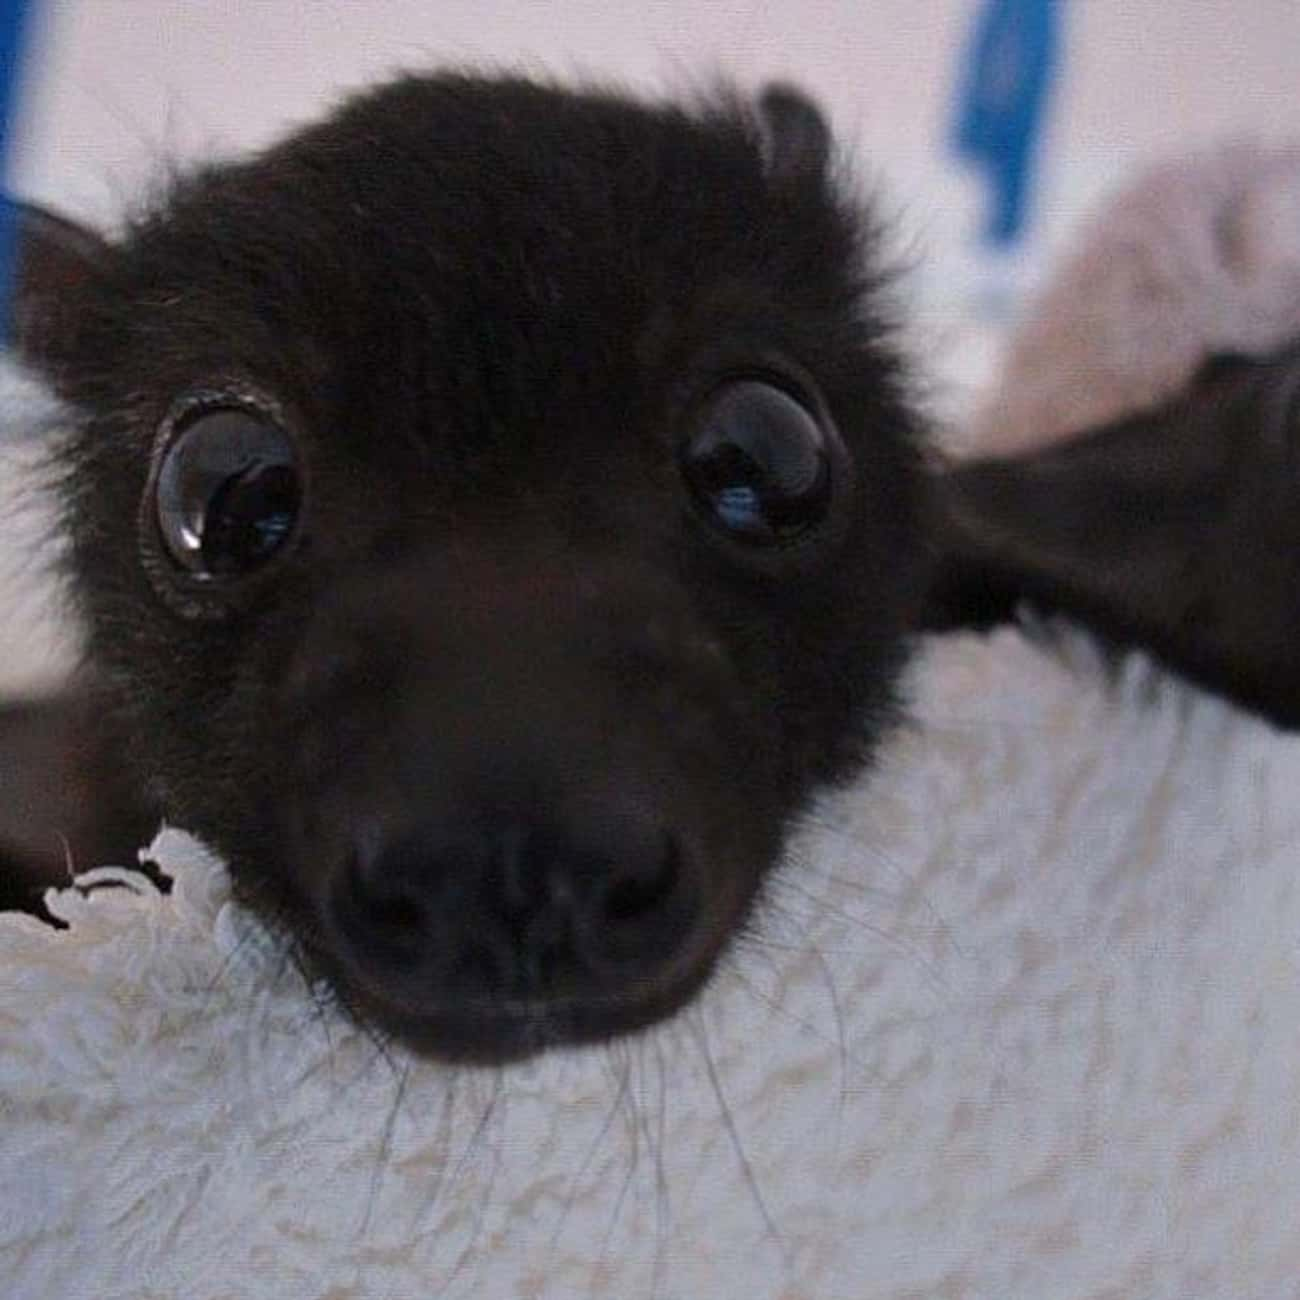 Look Into My Inexcusably Adora is listed (or ranked) 1 on the list 19 Bats That Prove They're Adorable Instead Of Terrifying